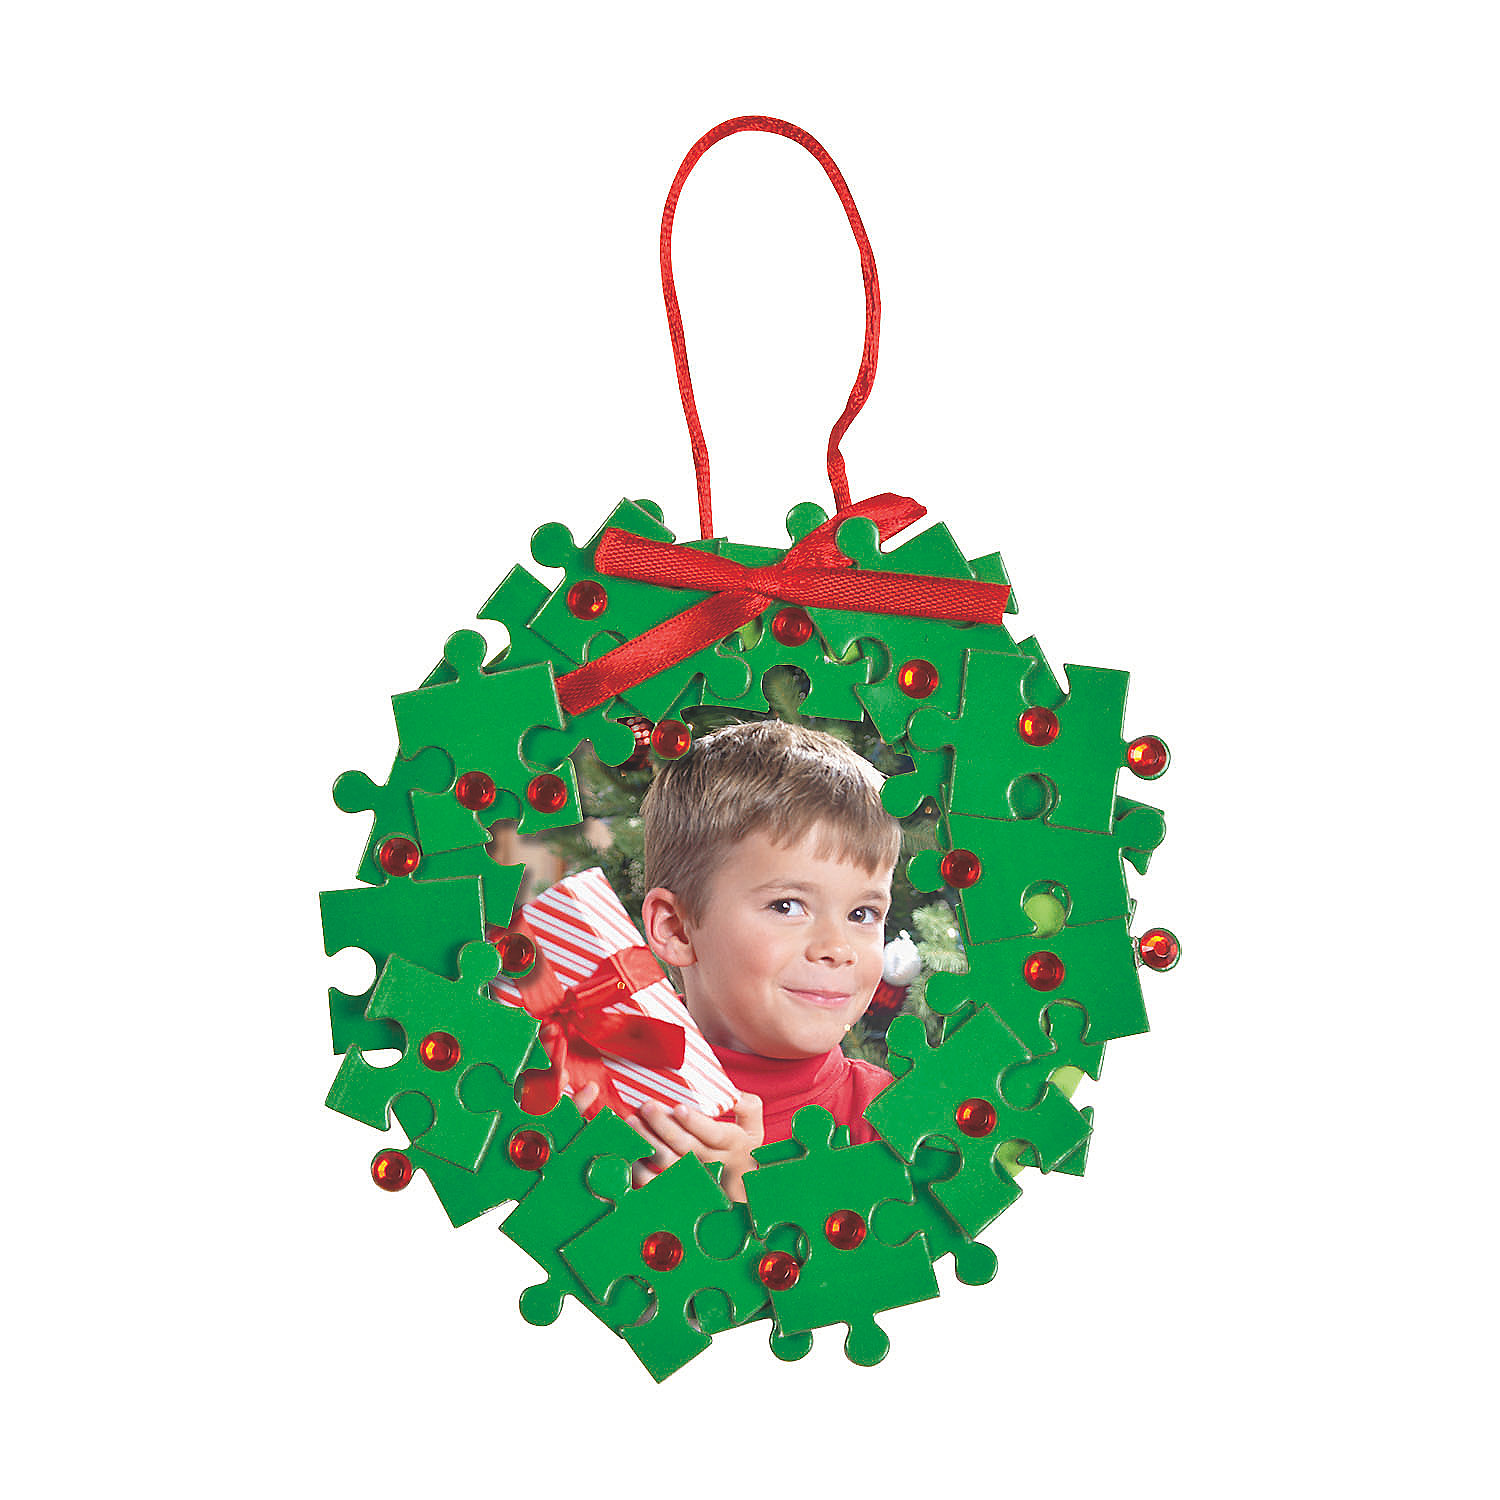 Puzzle piece christmas wreath picture frame ornament craft for Photo frame ornament craft